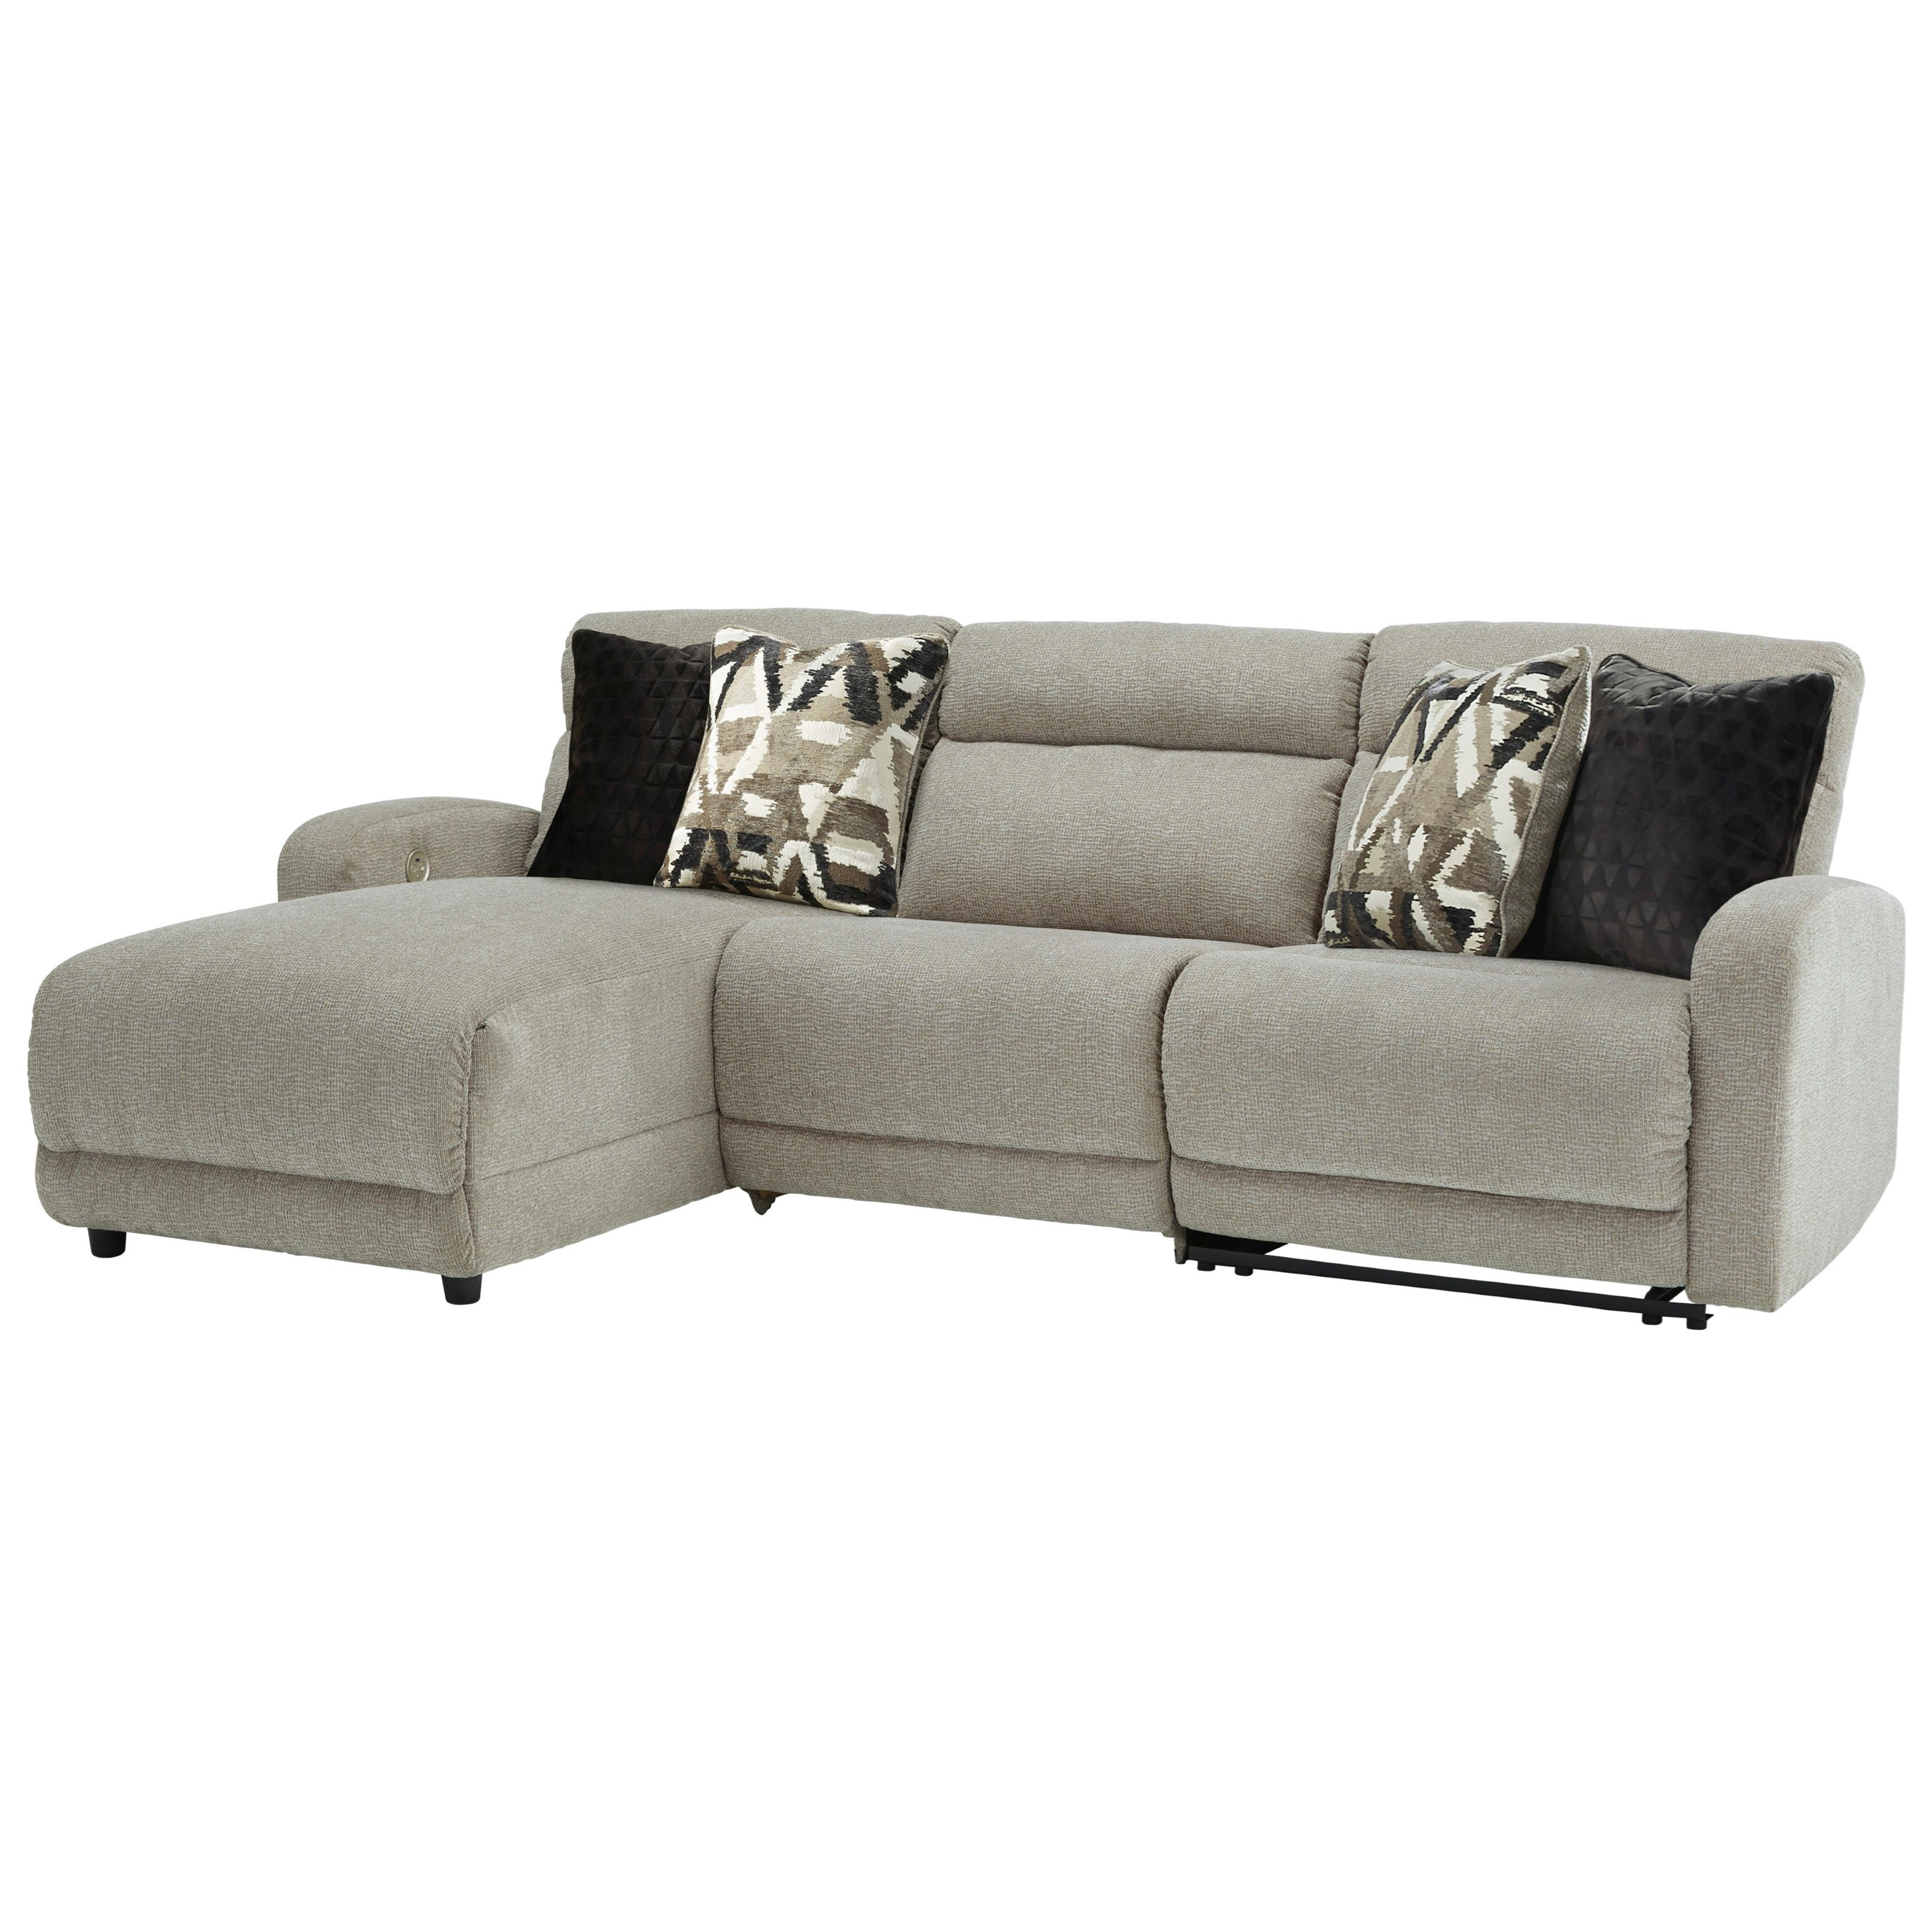 Colleyville 3-Piece Power Recl Sectional with Chaise by Signature Design by Ashley at Northeast Factory Direct